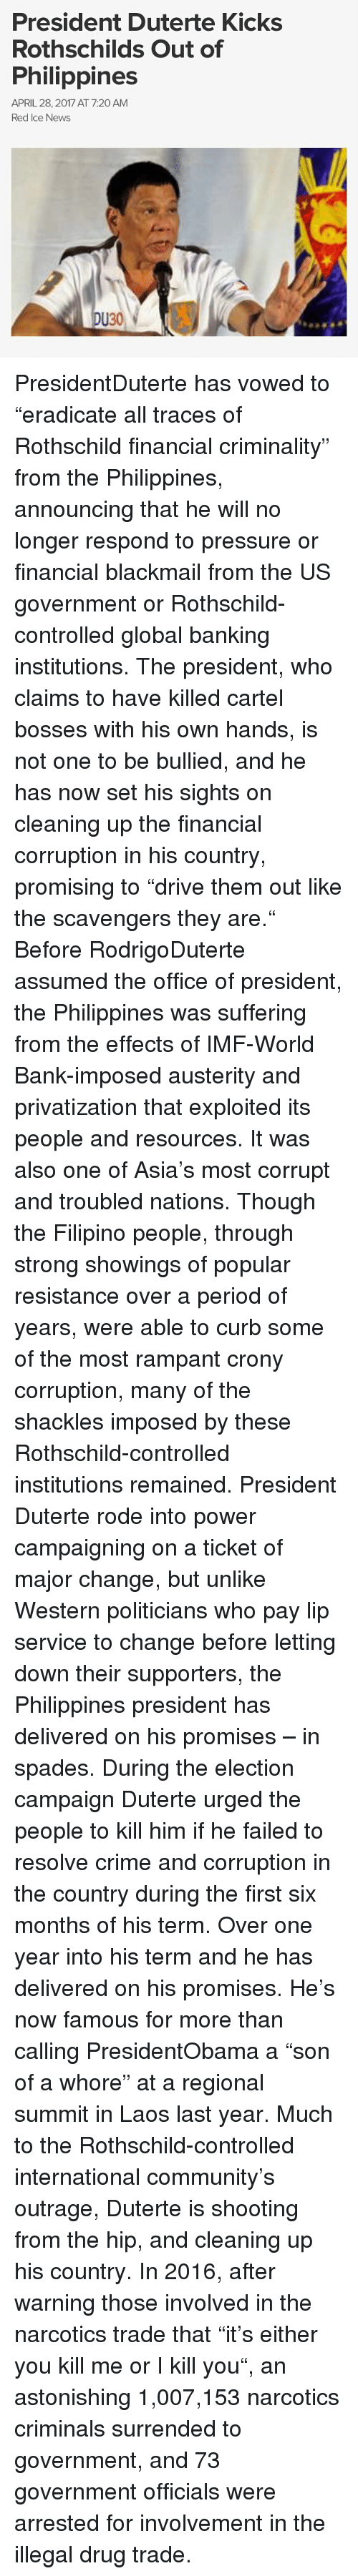 """Community, Crime, and Memes: President Duterte Kicks  Rothschilds Out of  Philippines  APRIL 28, 2017 AT 7:20 AM  Red Ice News  DU30 PresidentDuterte has vowed to """"eradicate all traces of Rothschild financial criminality"""" from the Philippines, announcing that he will no longer respond to pressure or financial blackmail from the US government or Rothschild-controlled global banking institutions. The president, who claims to have killed cartel bosses with his own hands, is not one to be bullied, and he has now set his sights on cleaning up the financial corruption in his country, promising to """"drive them out like the scavengers they are."""" Before RodrigoDuterte assumed the office of president, the Philippines was suffering from the effects of IMF-World Bank-imposed austerity and privatization that exploited its people and resources. It was also one of Asia's most corrupt and troubled nations. Though the Filipino people, through strong showings of popular resistance over a period of years, were able to curb some of the most rampant crony corruption, many of the shackles imposed by these Rothschild-controlled institutions remained. President Duterte rode into power campaigning on a ticket of major change, but unlike Western politicians who pay lip service to change before letting down their supporters, the Philippines president has delivered on his promises – in spades. During the election campaign Duterte urged the people to kill him if he failed to resolve crime and corruption in the country during the first six months of his term. Over one year into his term and he has delivered on his promises. He's now famous for more than calling PresidentObama a """"son of a whore"""" at a regional summit in Laos last year. Much to the Rothschild-controlled international community's outrage, Duterte is shooting from the hip, and cleaning up his country. In 2016, after warning those involved in the narcotics trade that """"it's either you kill me or I kill you"""", an astonishing 1,007,153 nar"""